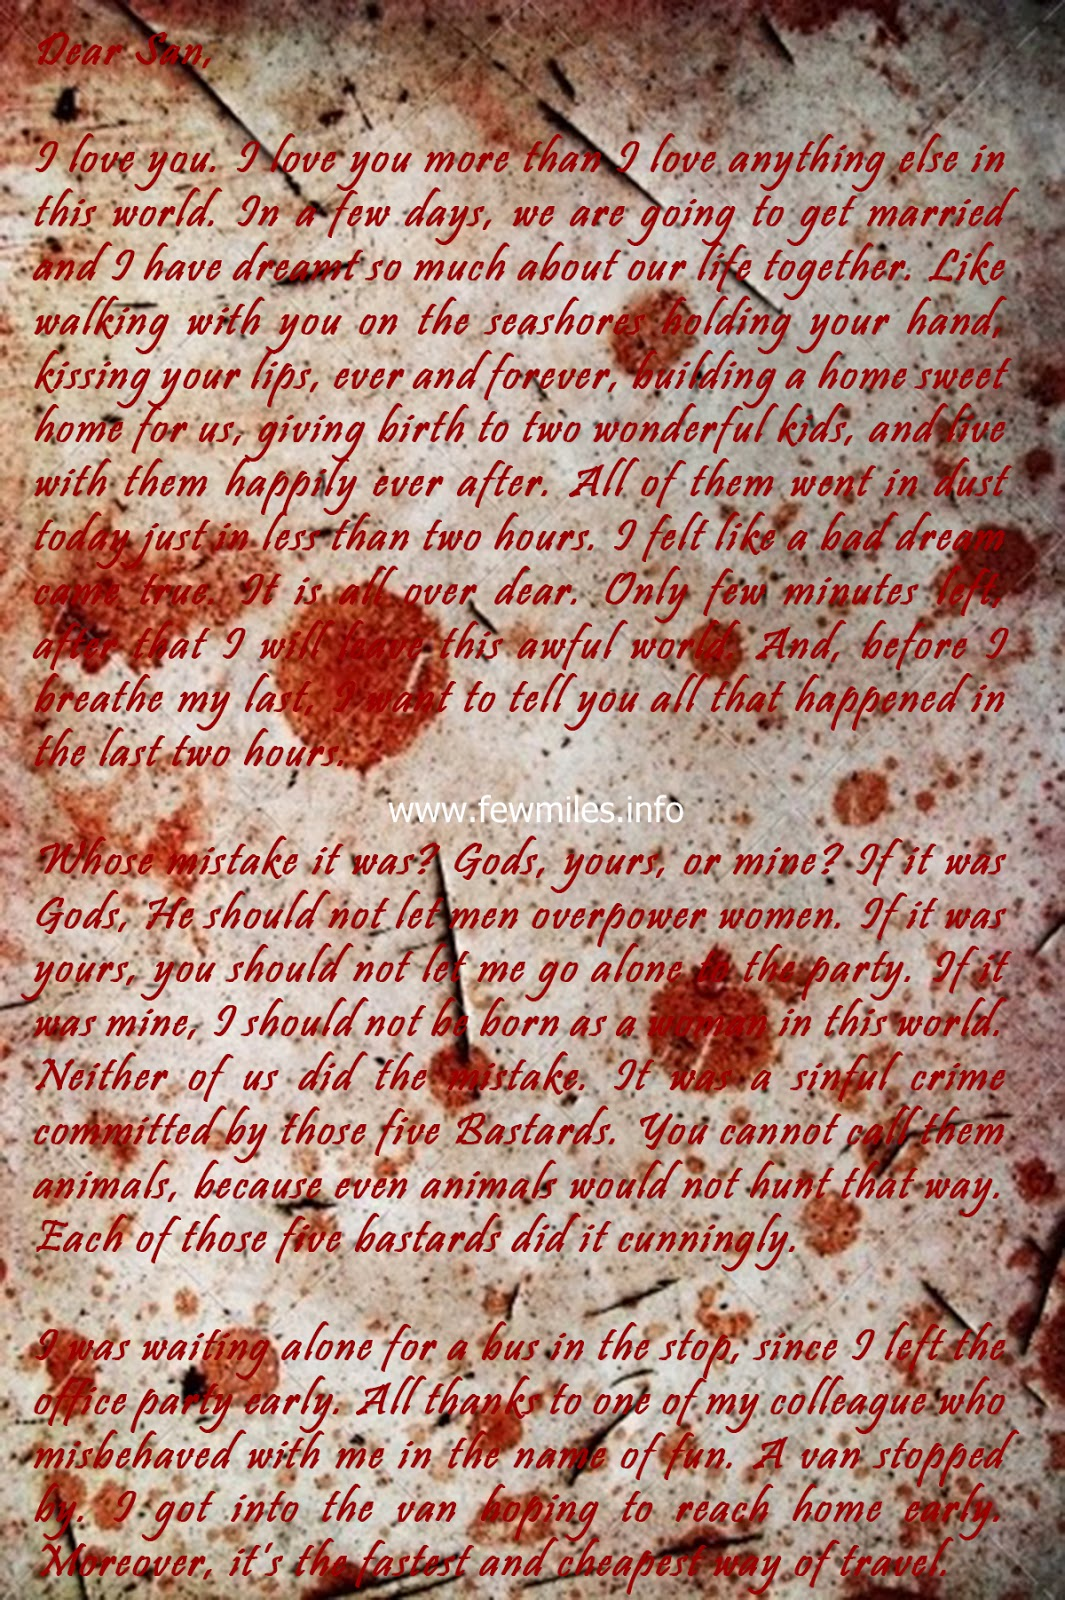 Unsent Letter by a Girl Who Was Gang Raped